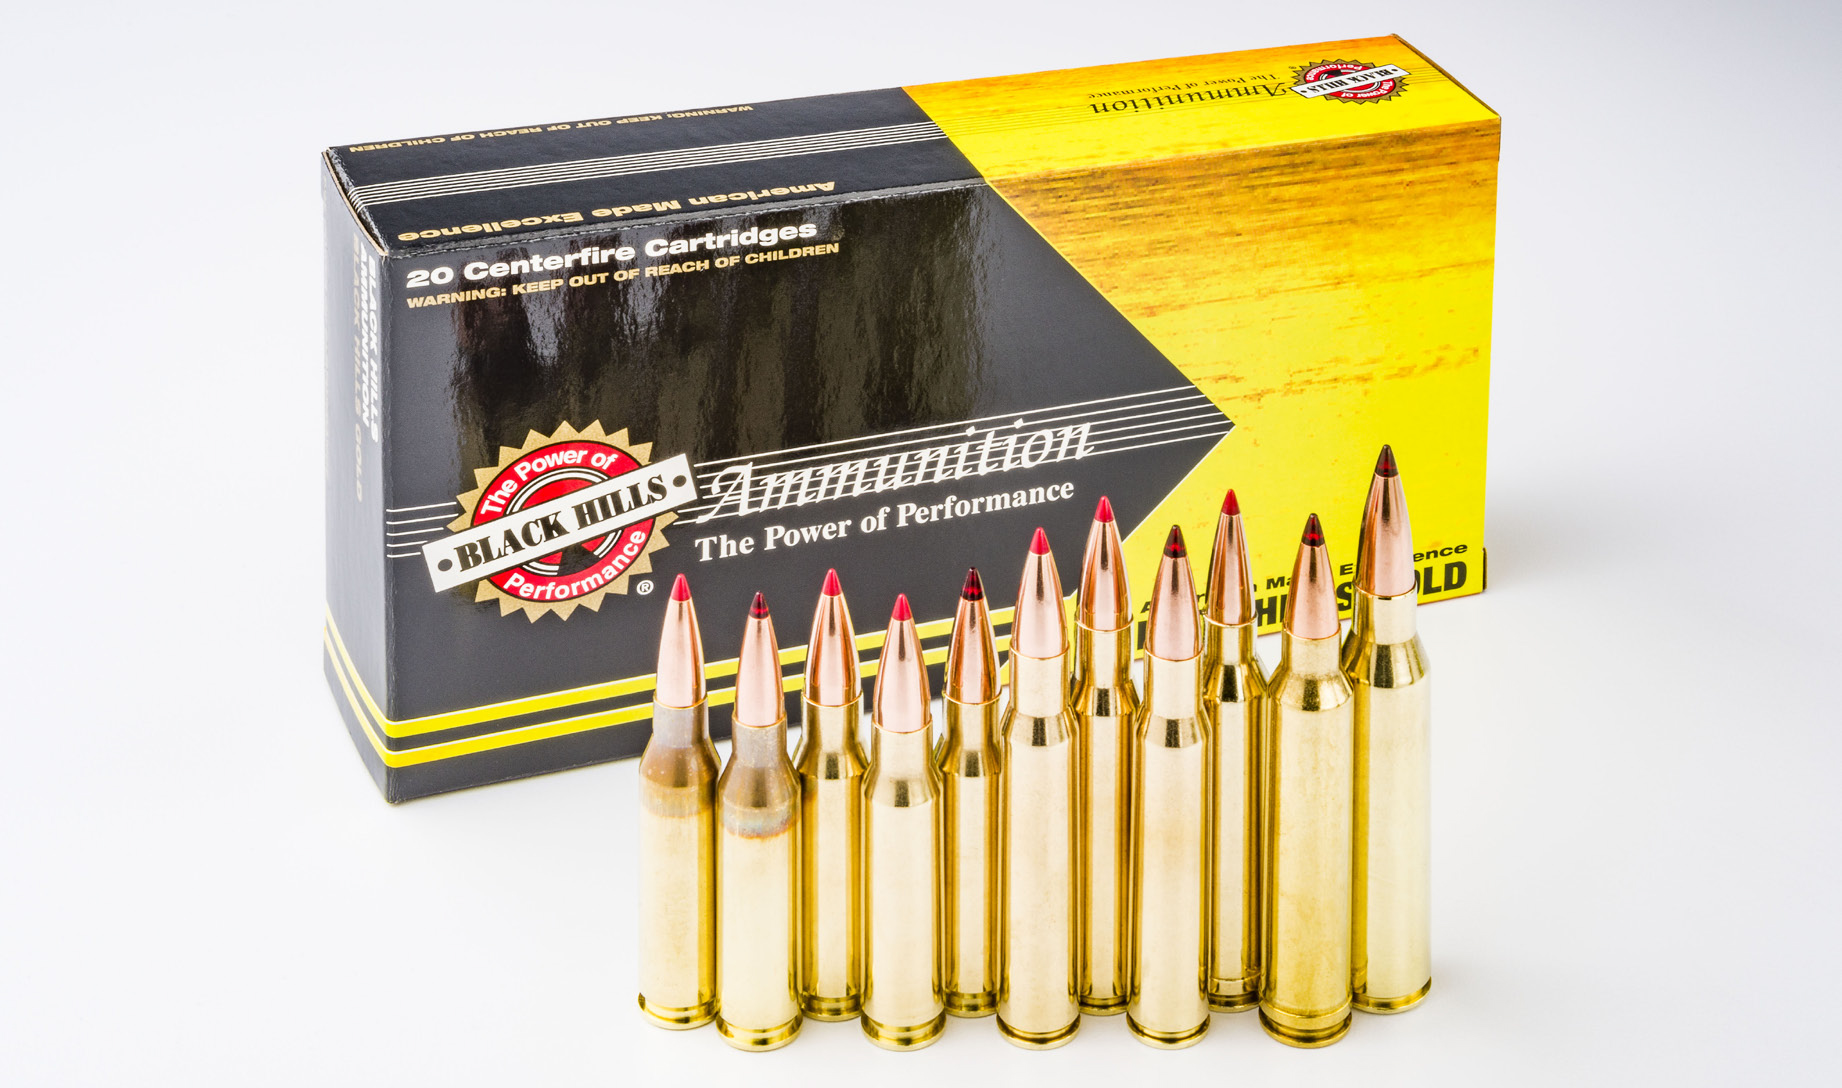 New from Black Hills Ammunition | Load Data Article